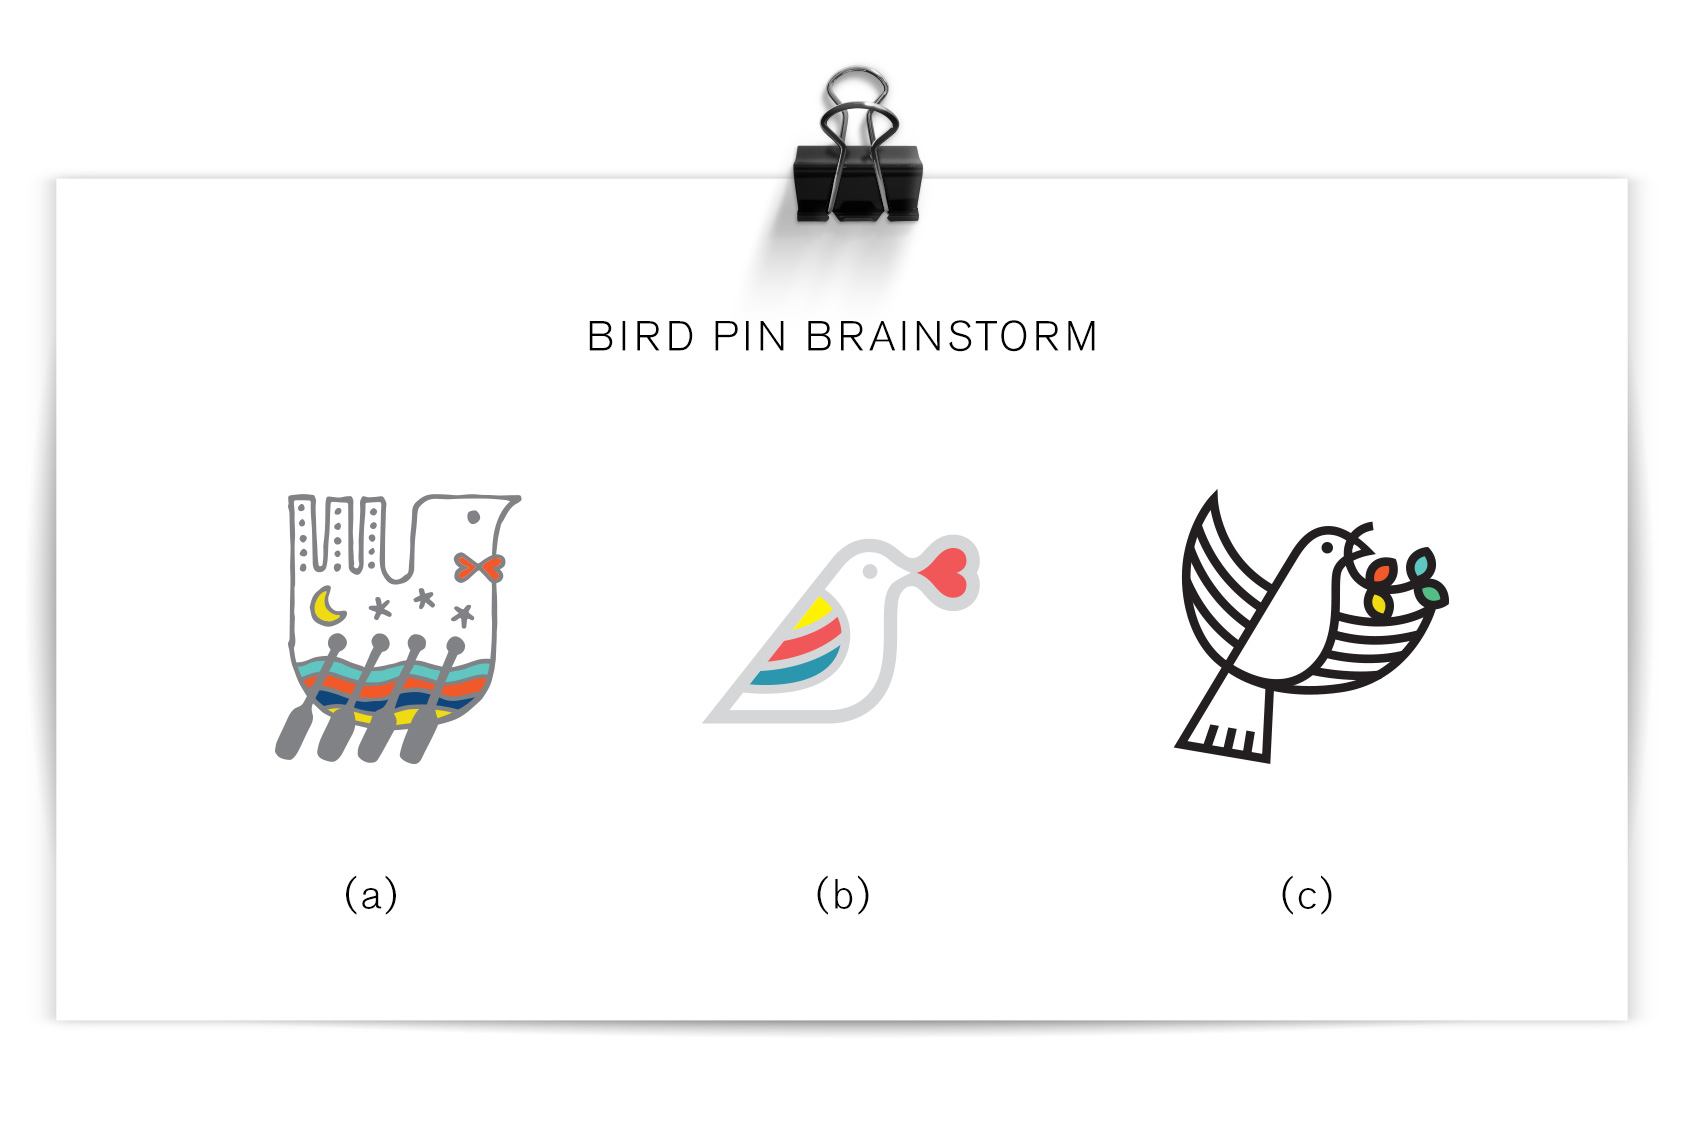 preliminary bird pin brainstorms